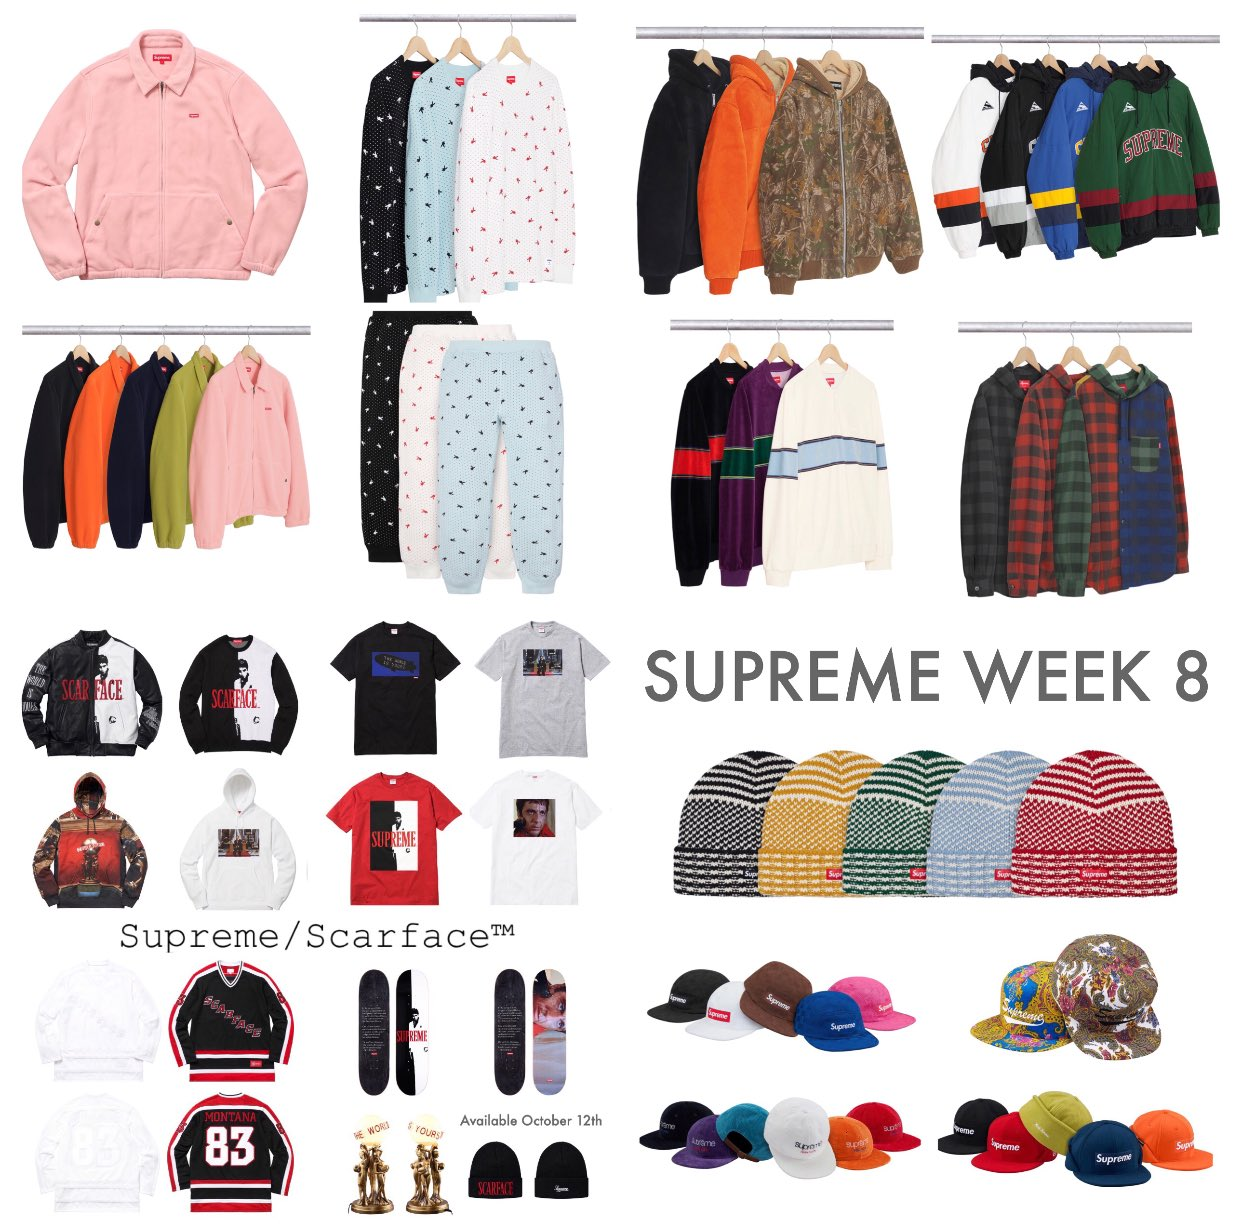 supreme-online-store-20171014-week8-release-items